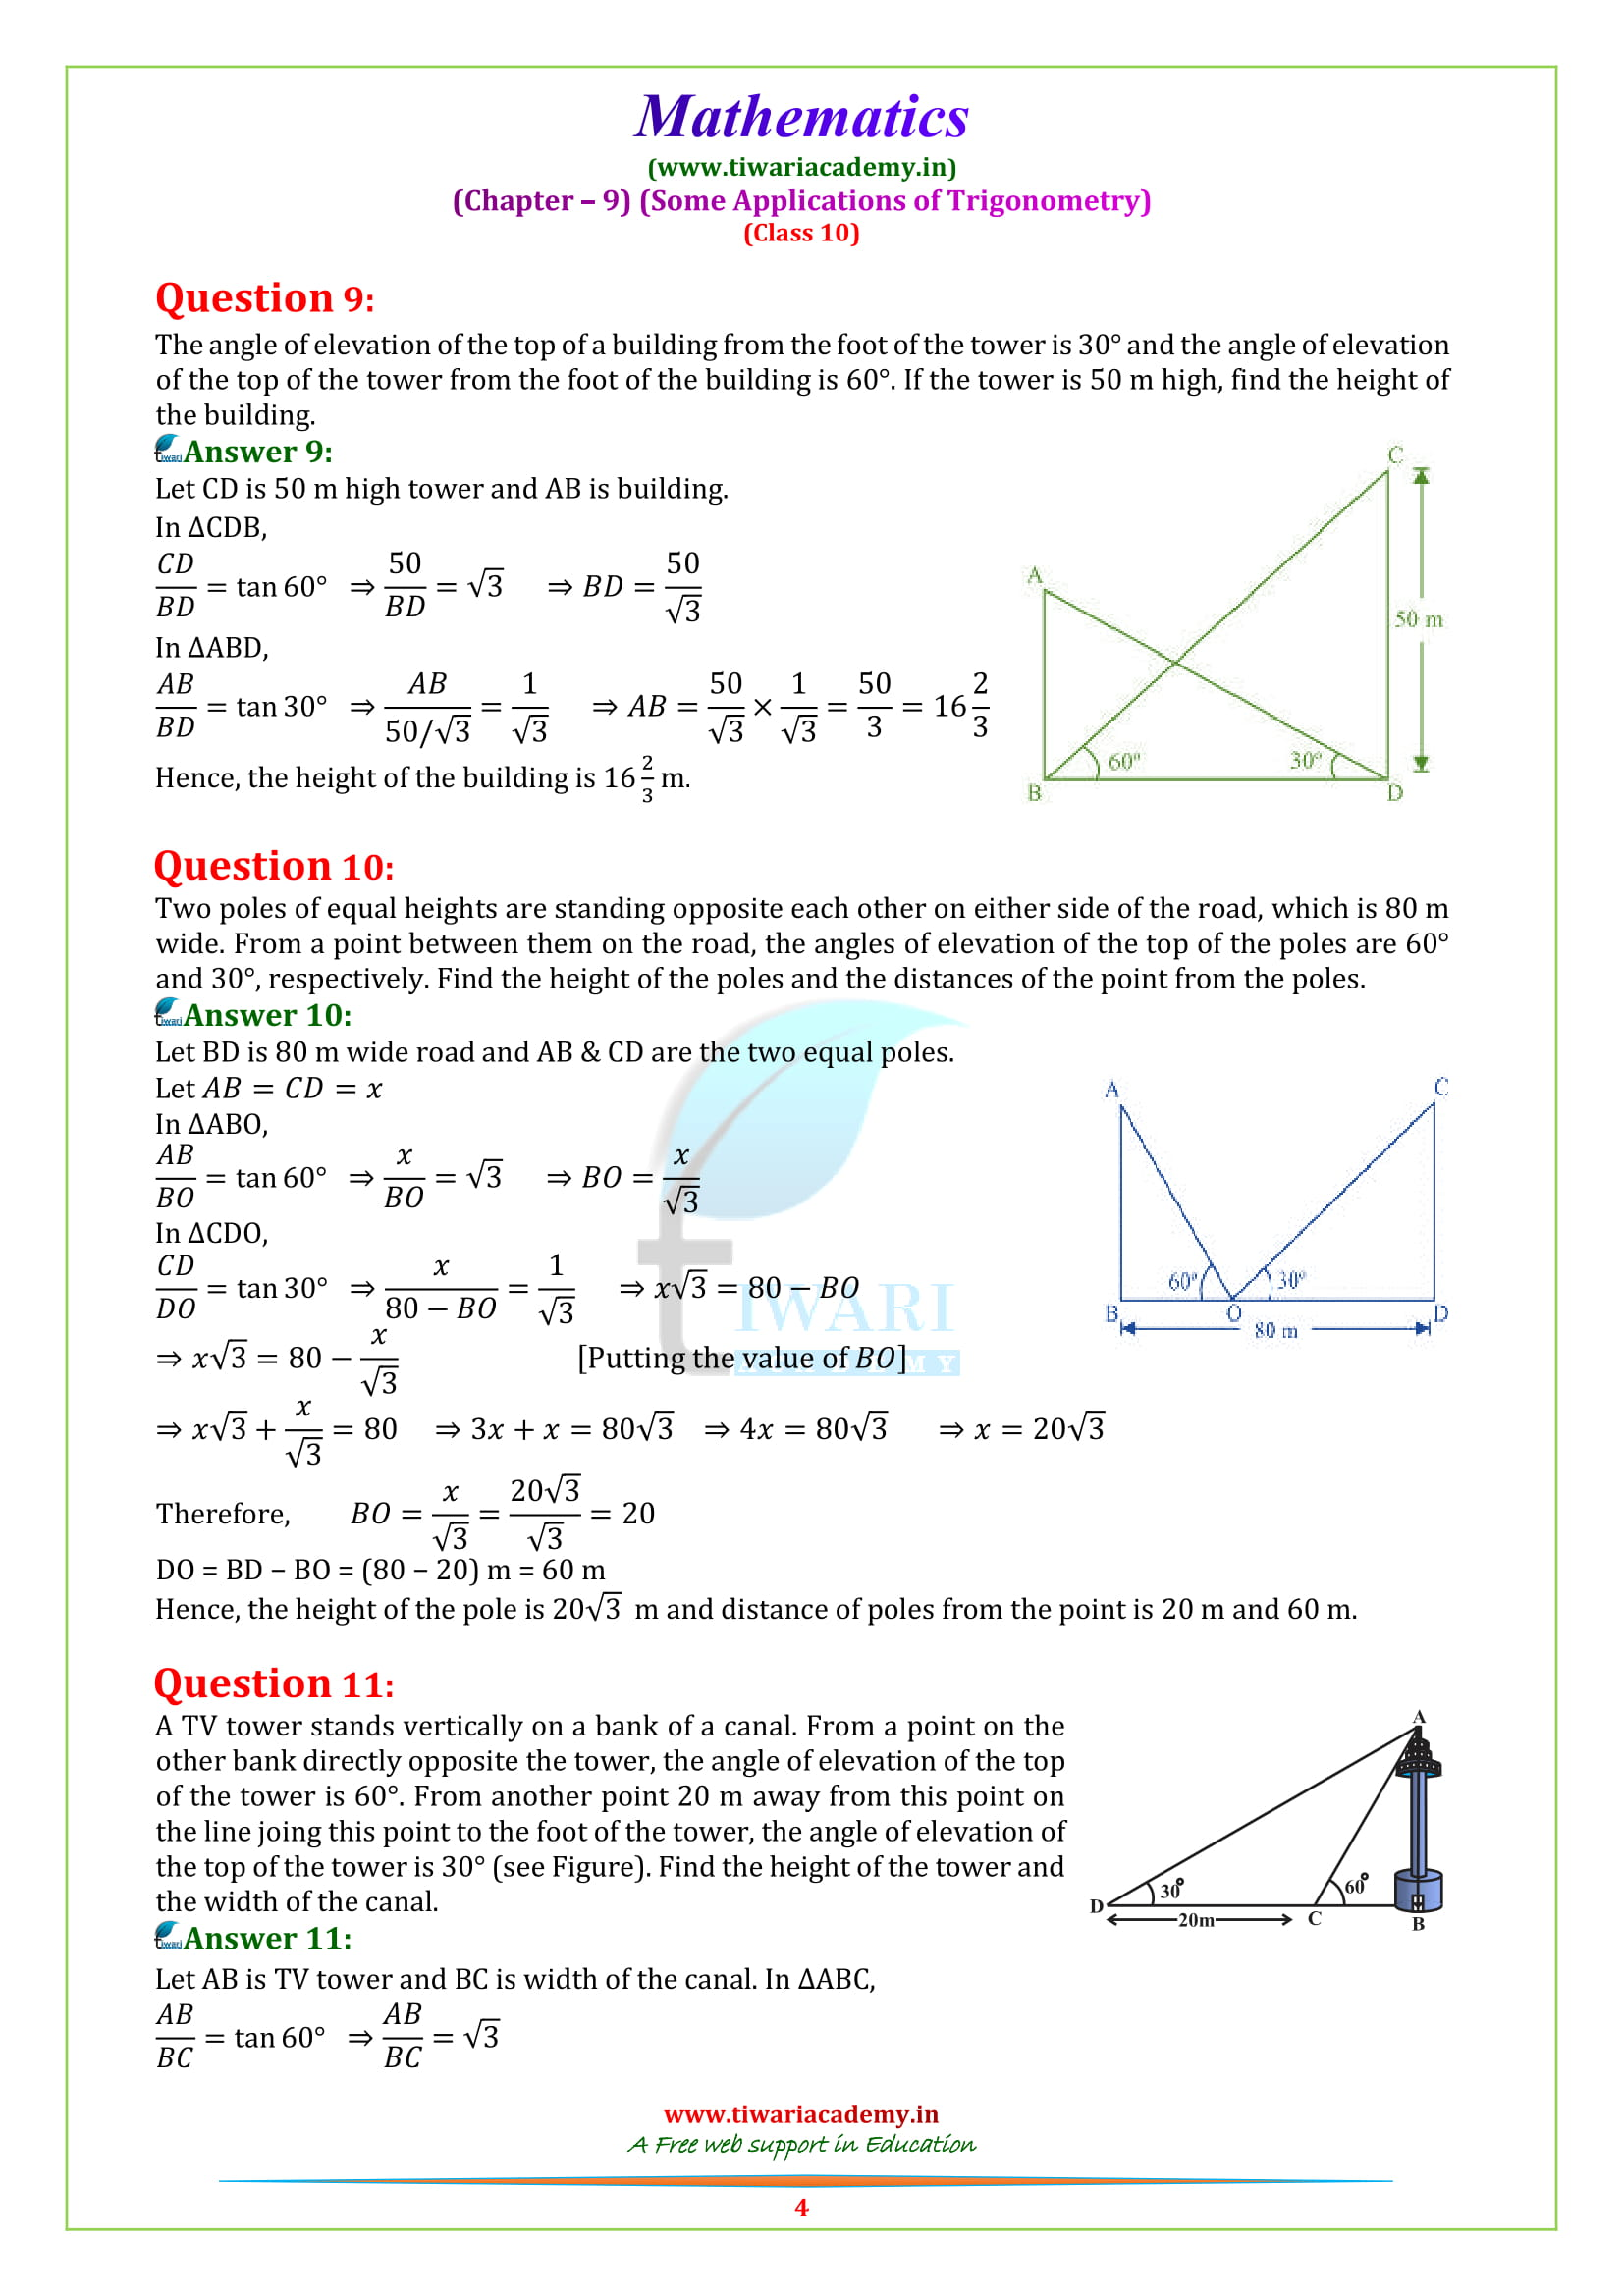 10 Maths exercise 9.1 question 9 and 10 solutions